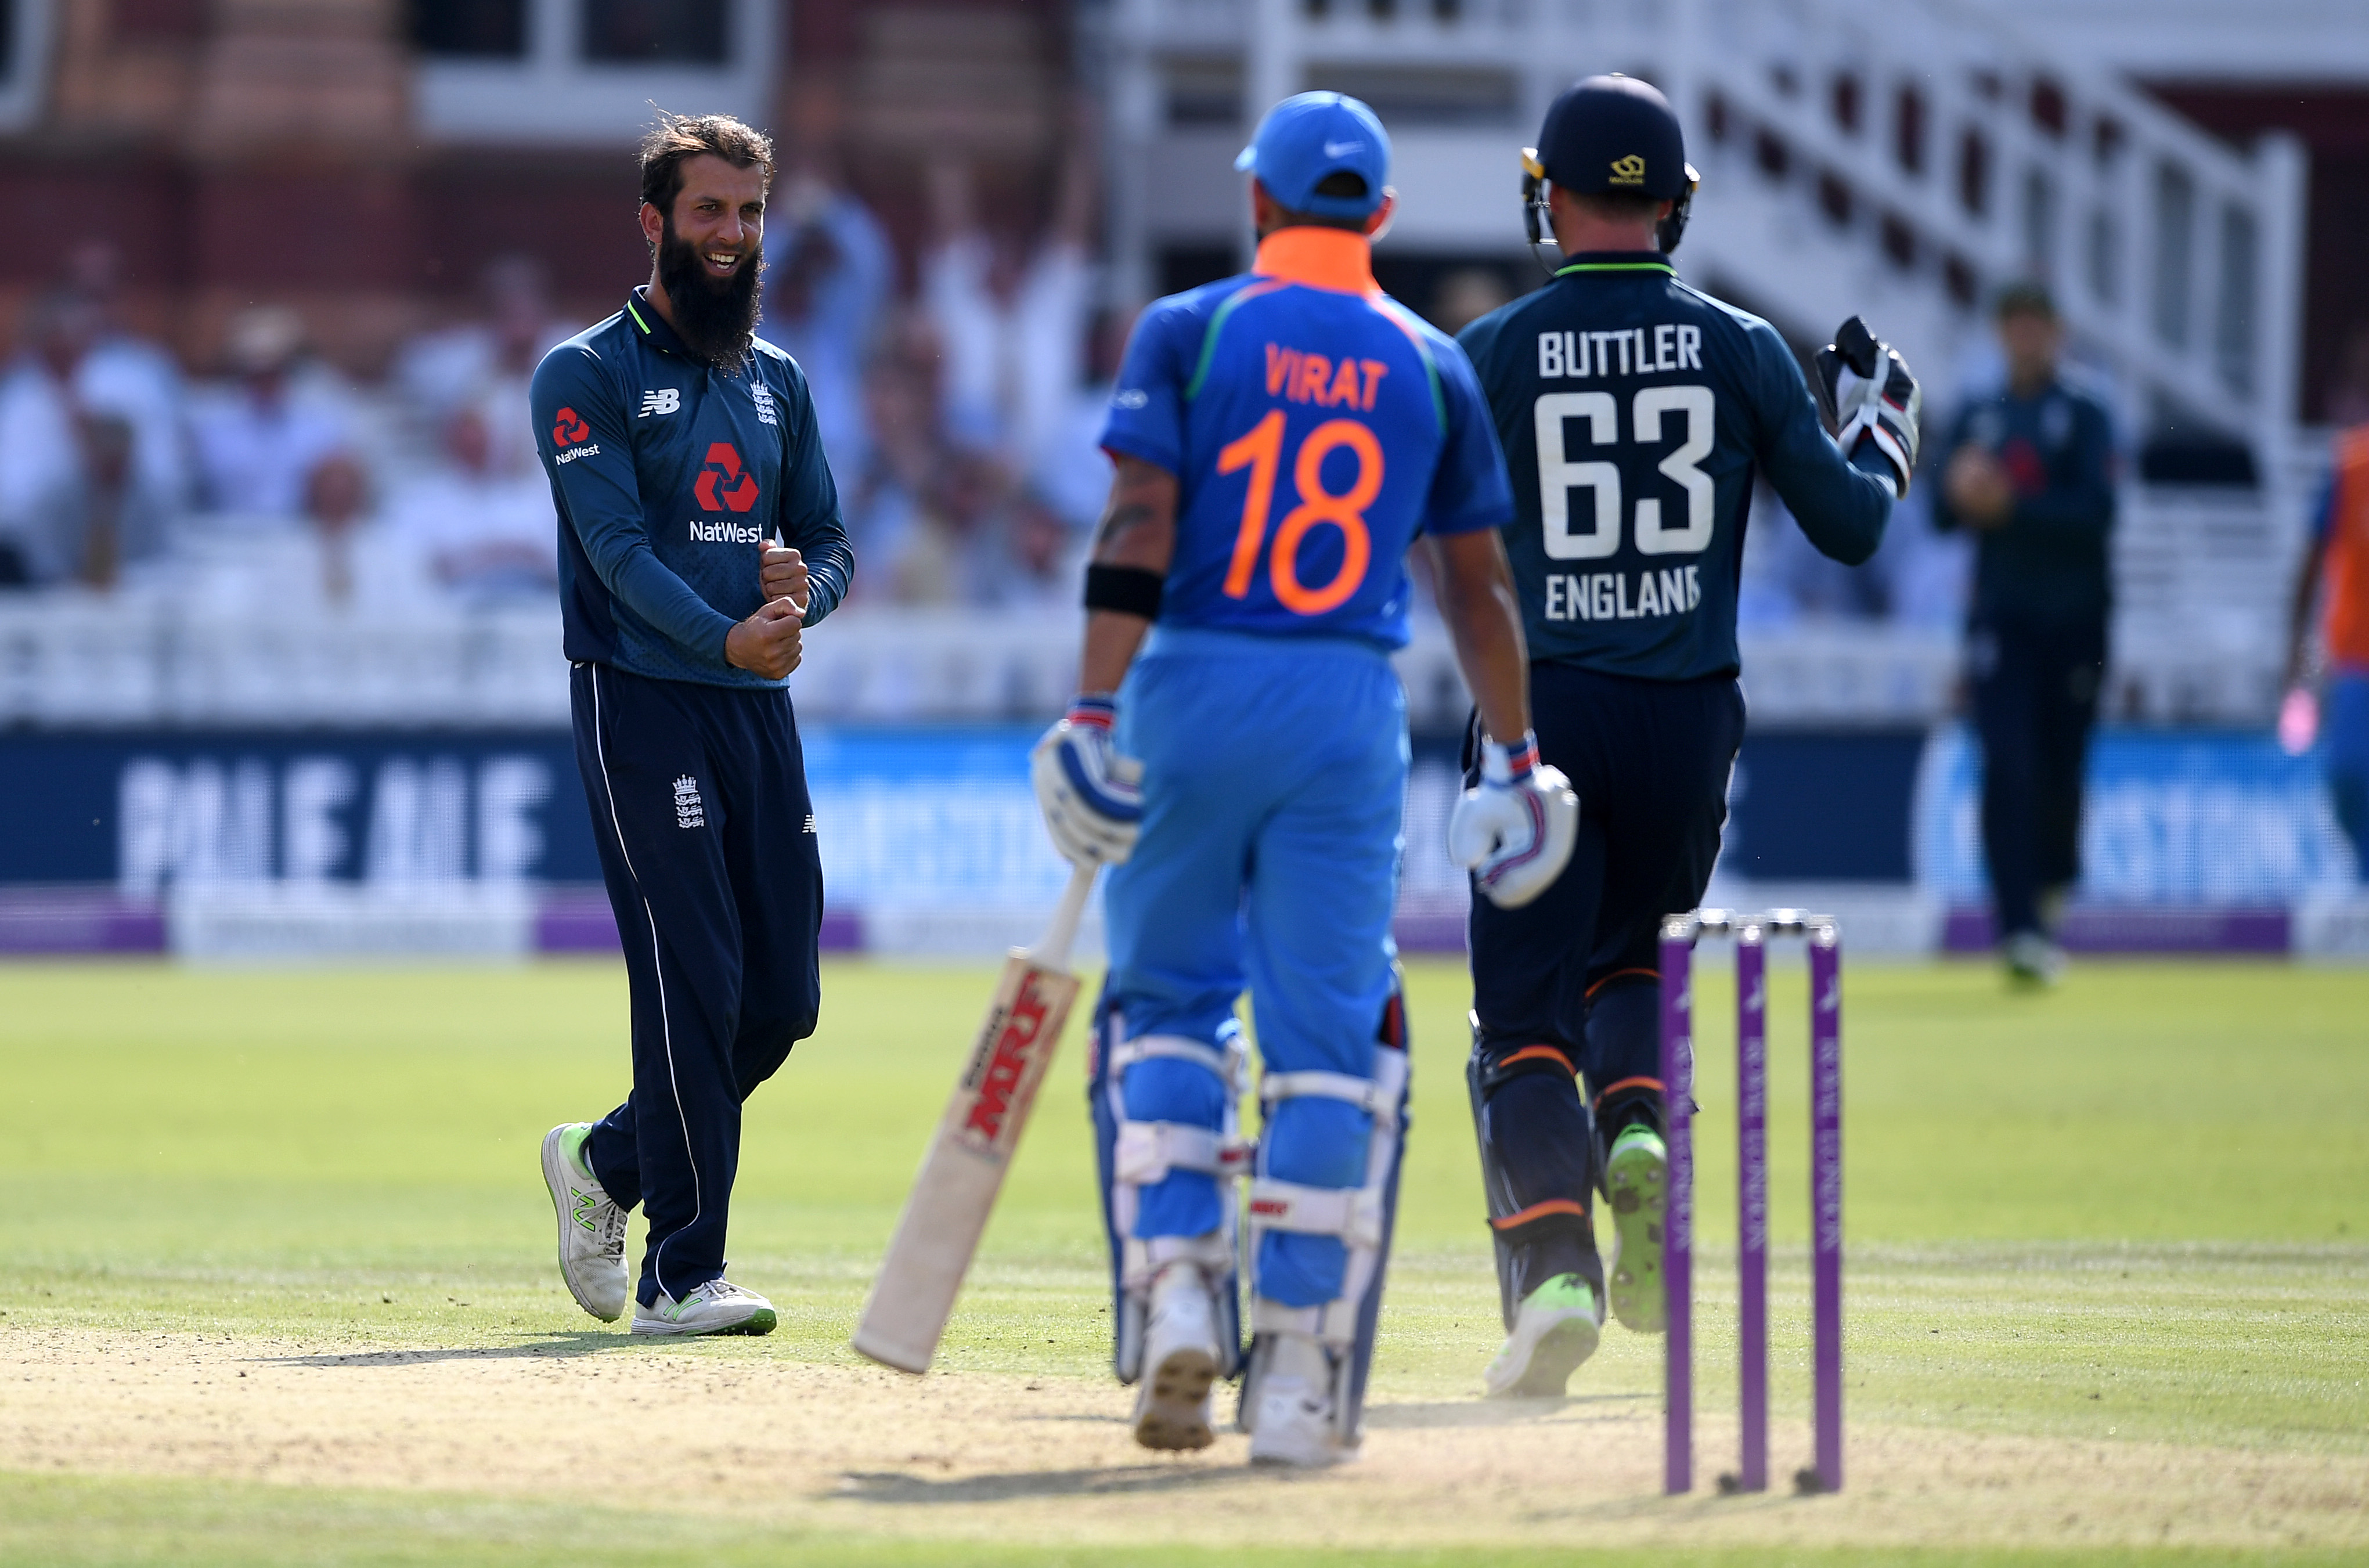 Moeen Ali celebrates dismissing India captain Virat Kohli at Lord's | Getty